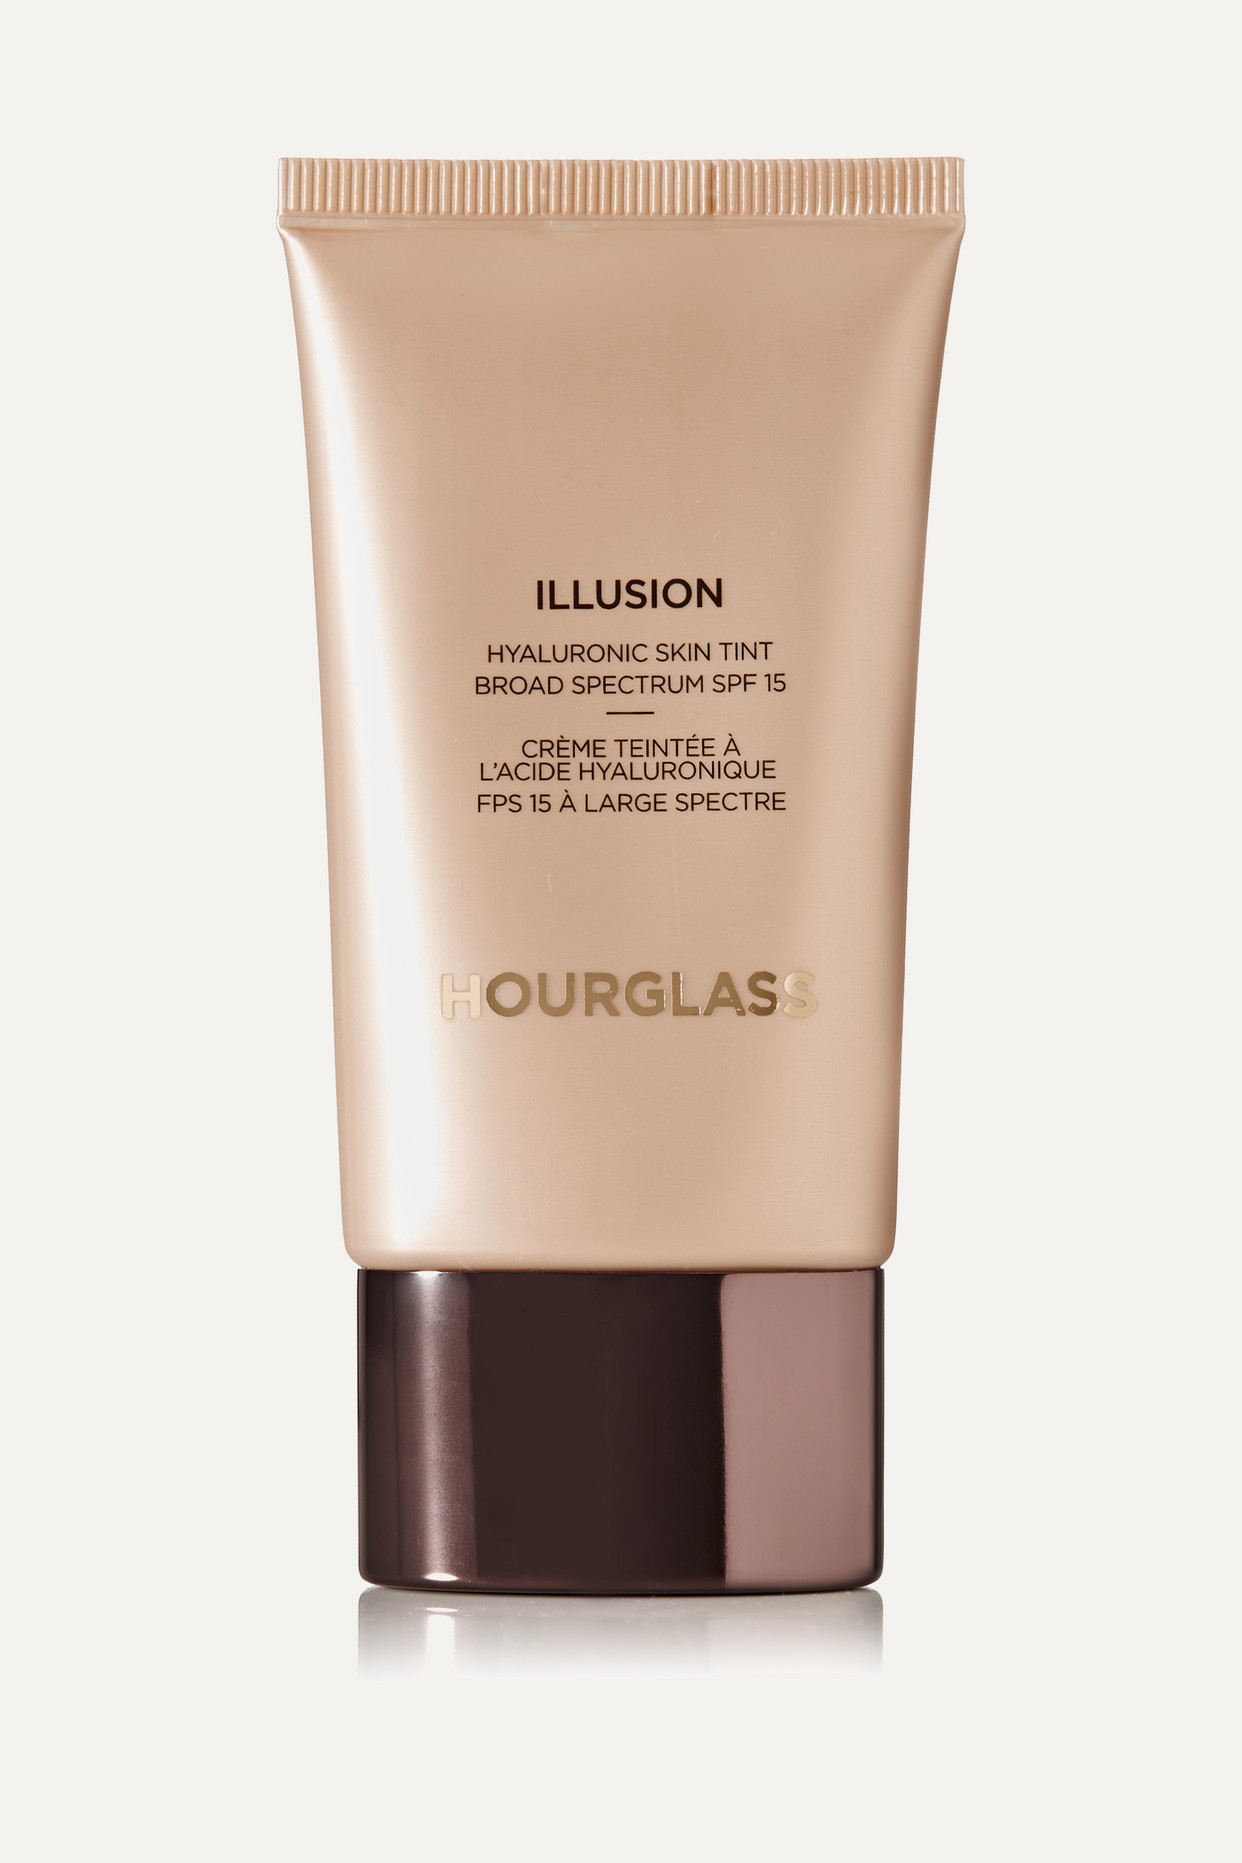 HOURGLASS - Illusion® Hyaluronic Skin Tint Spf15 - Beige, 30ml - Neutrals - one size